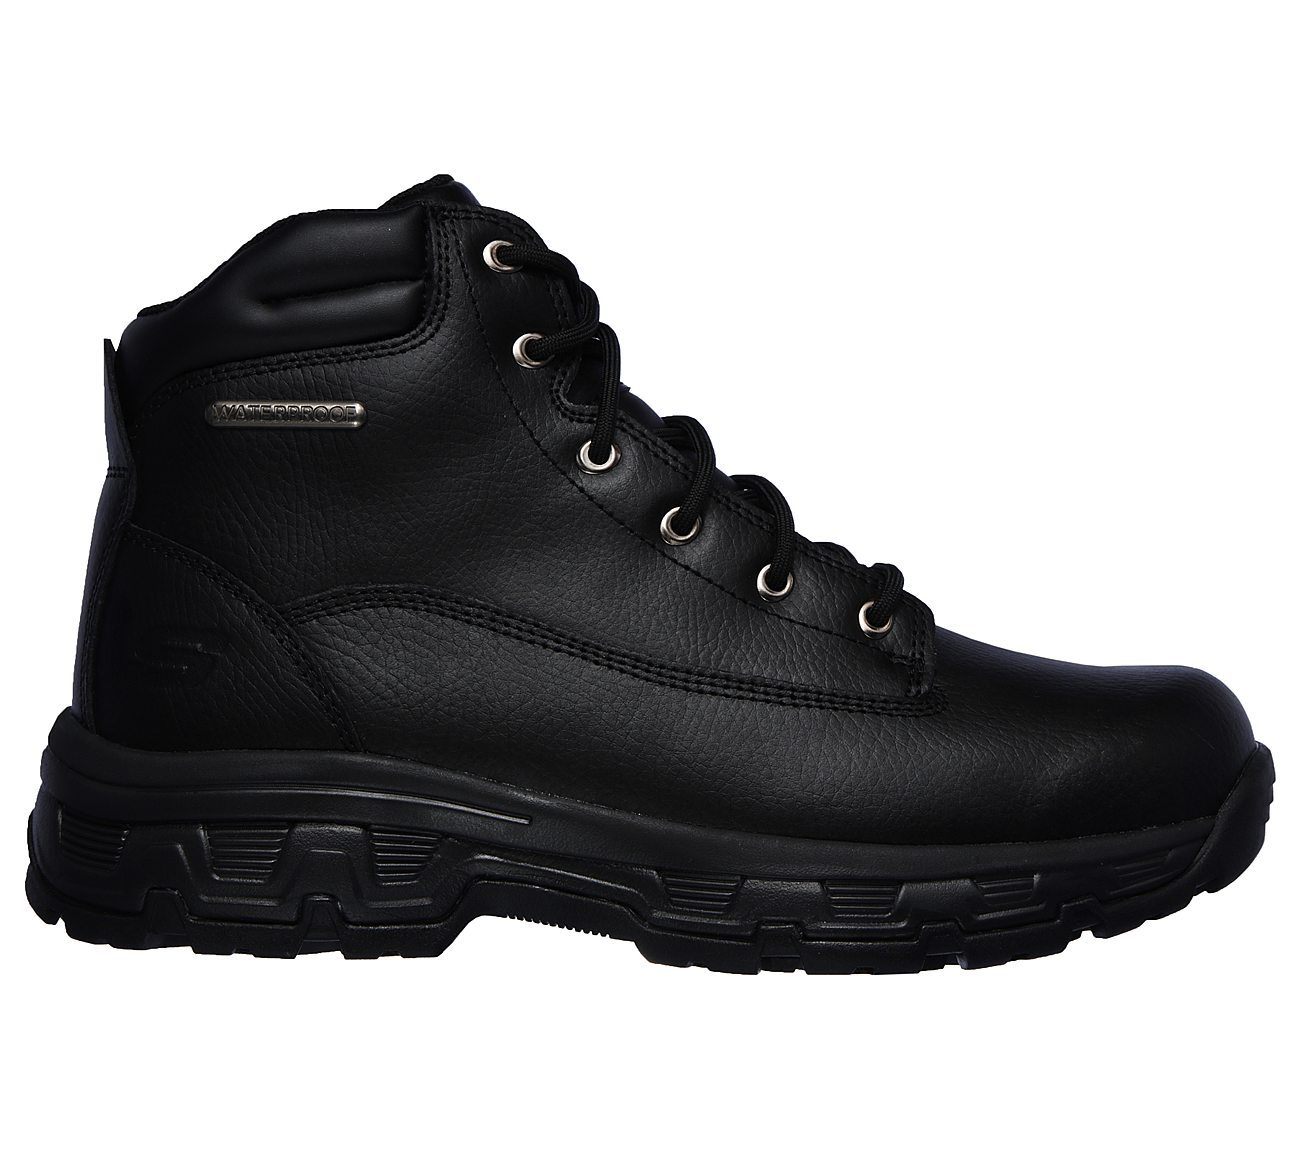 2b7db635a4ce2 Buy SKECHERS Relaxed Fit: Morson - Sinatro USA Casuals Shoes only $90.00